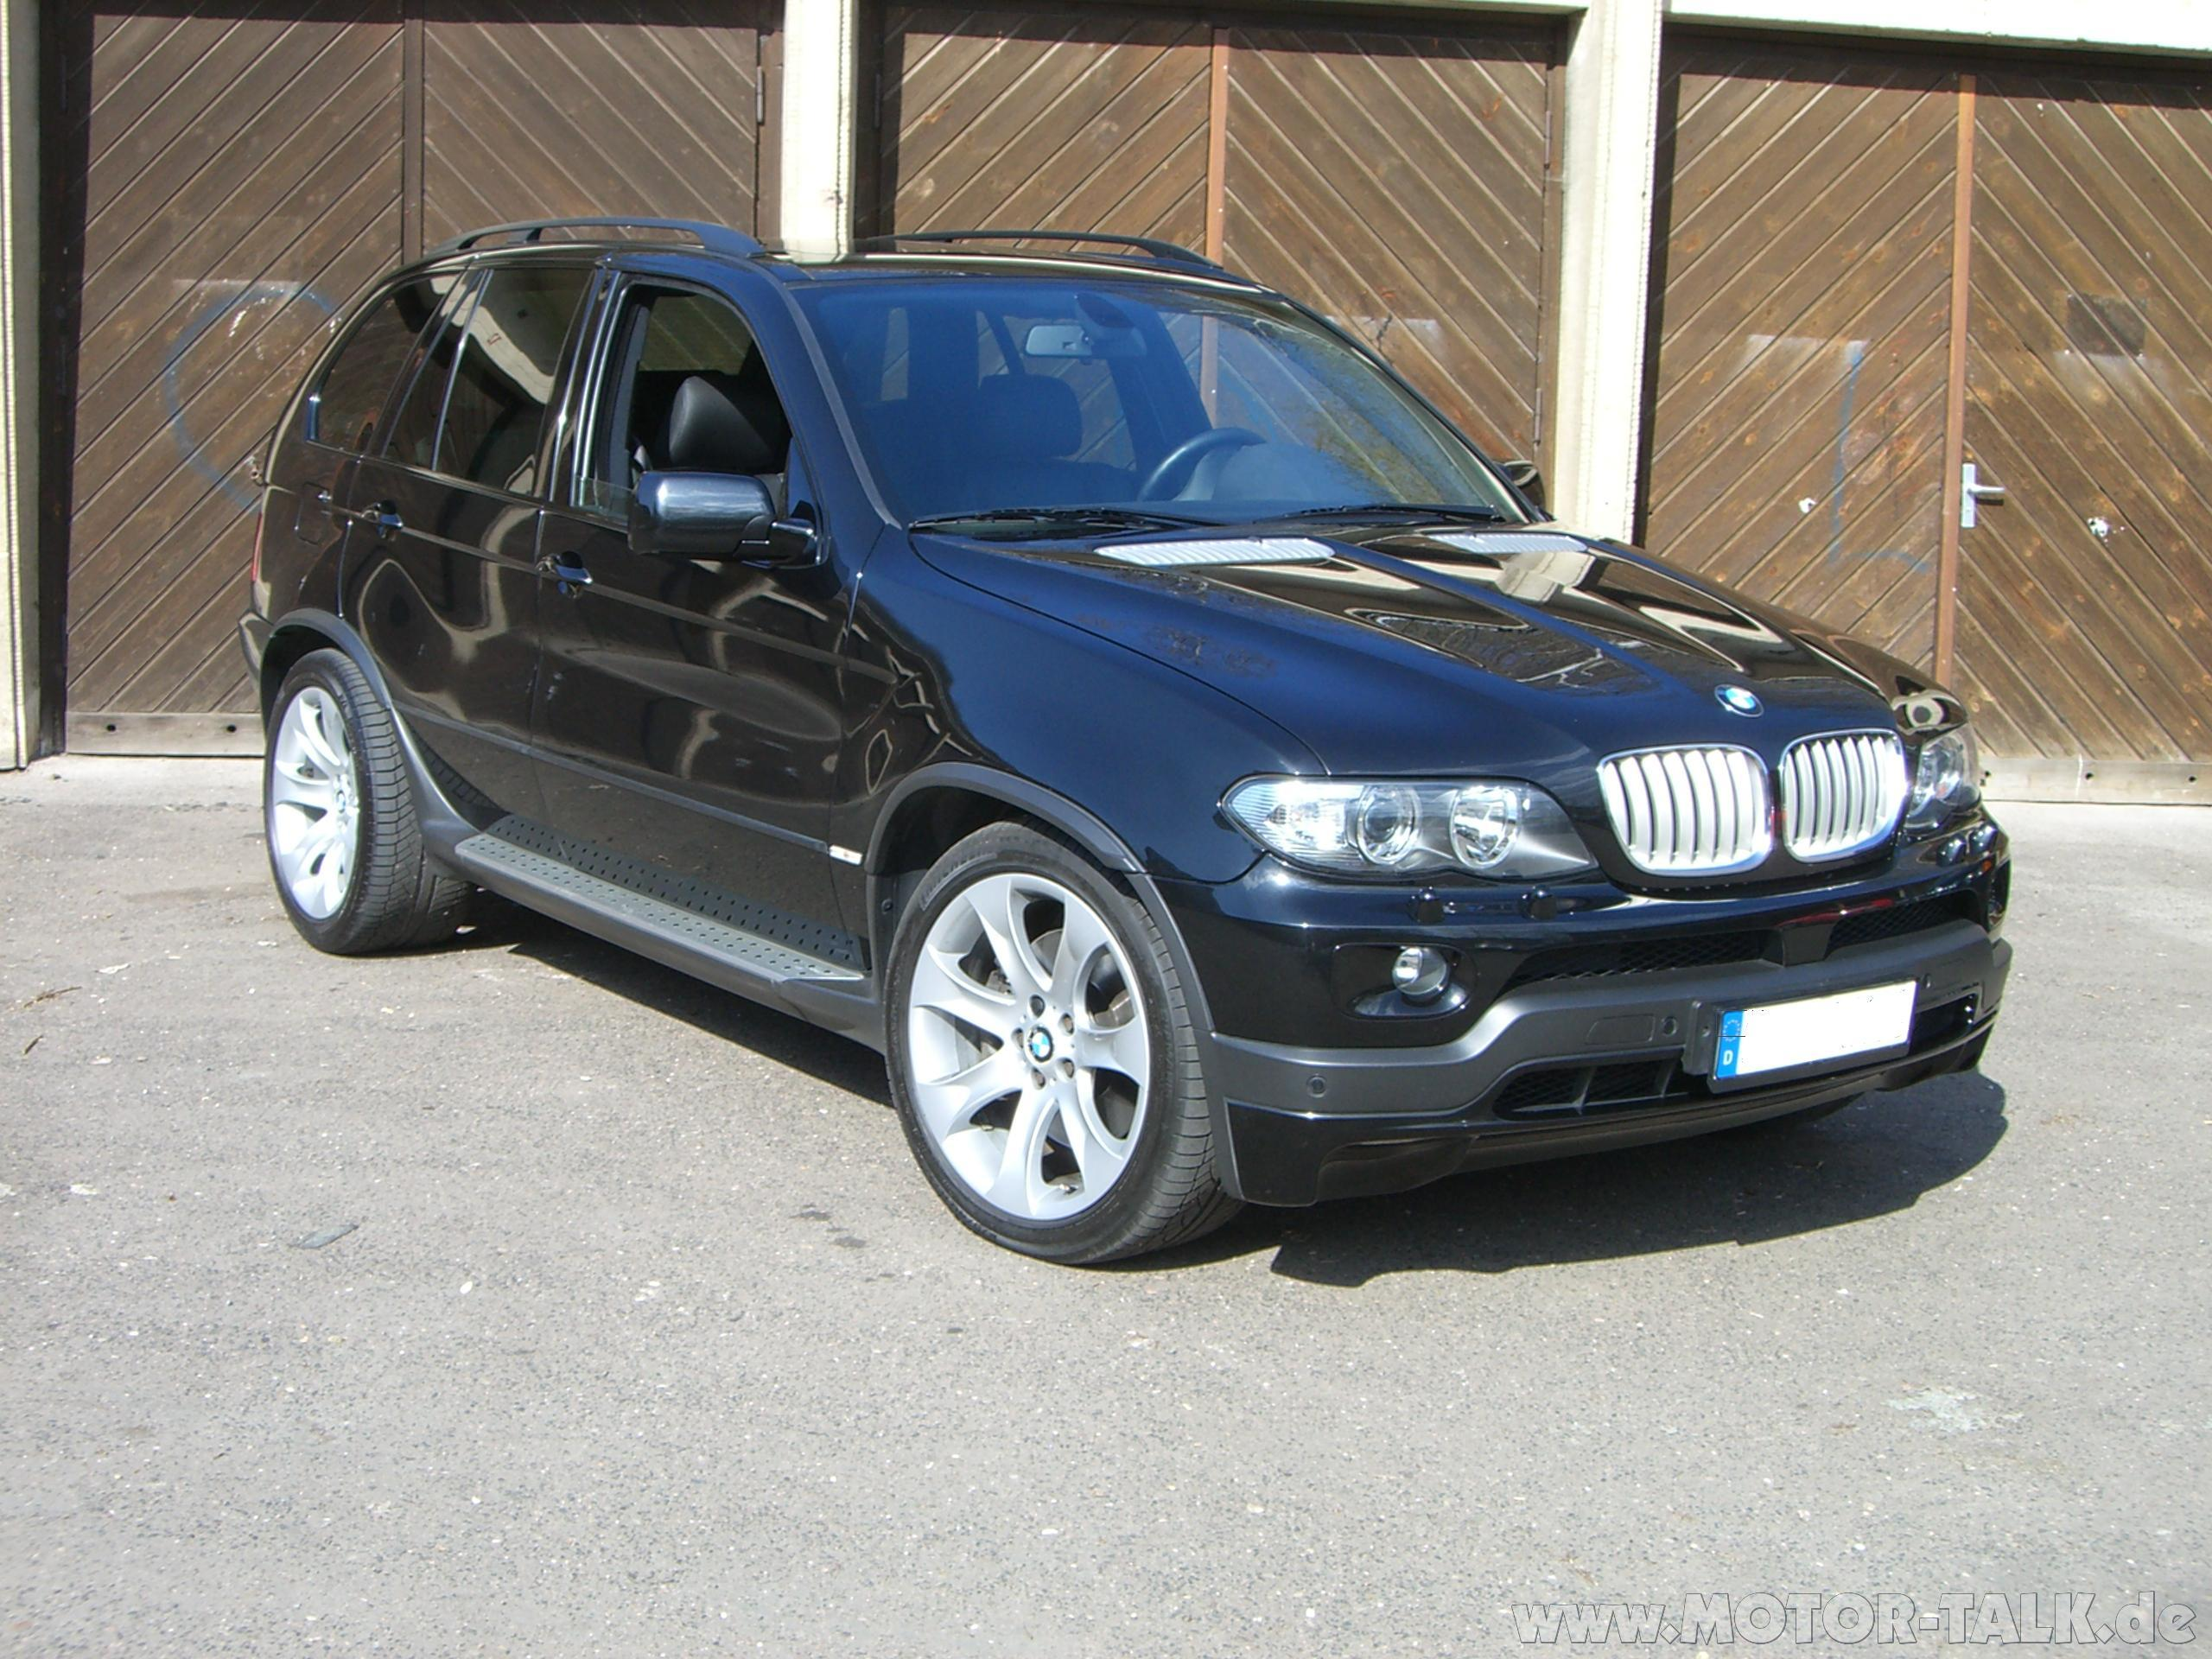 cimg3337 verbrauchswerte unterhaltskosten bmw x5 bmw x5 e53 203336116. Black Bedroom Furniture Sets. Home Design Ideas